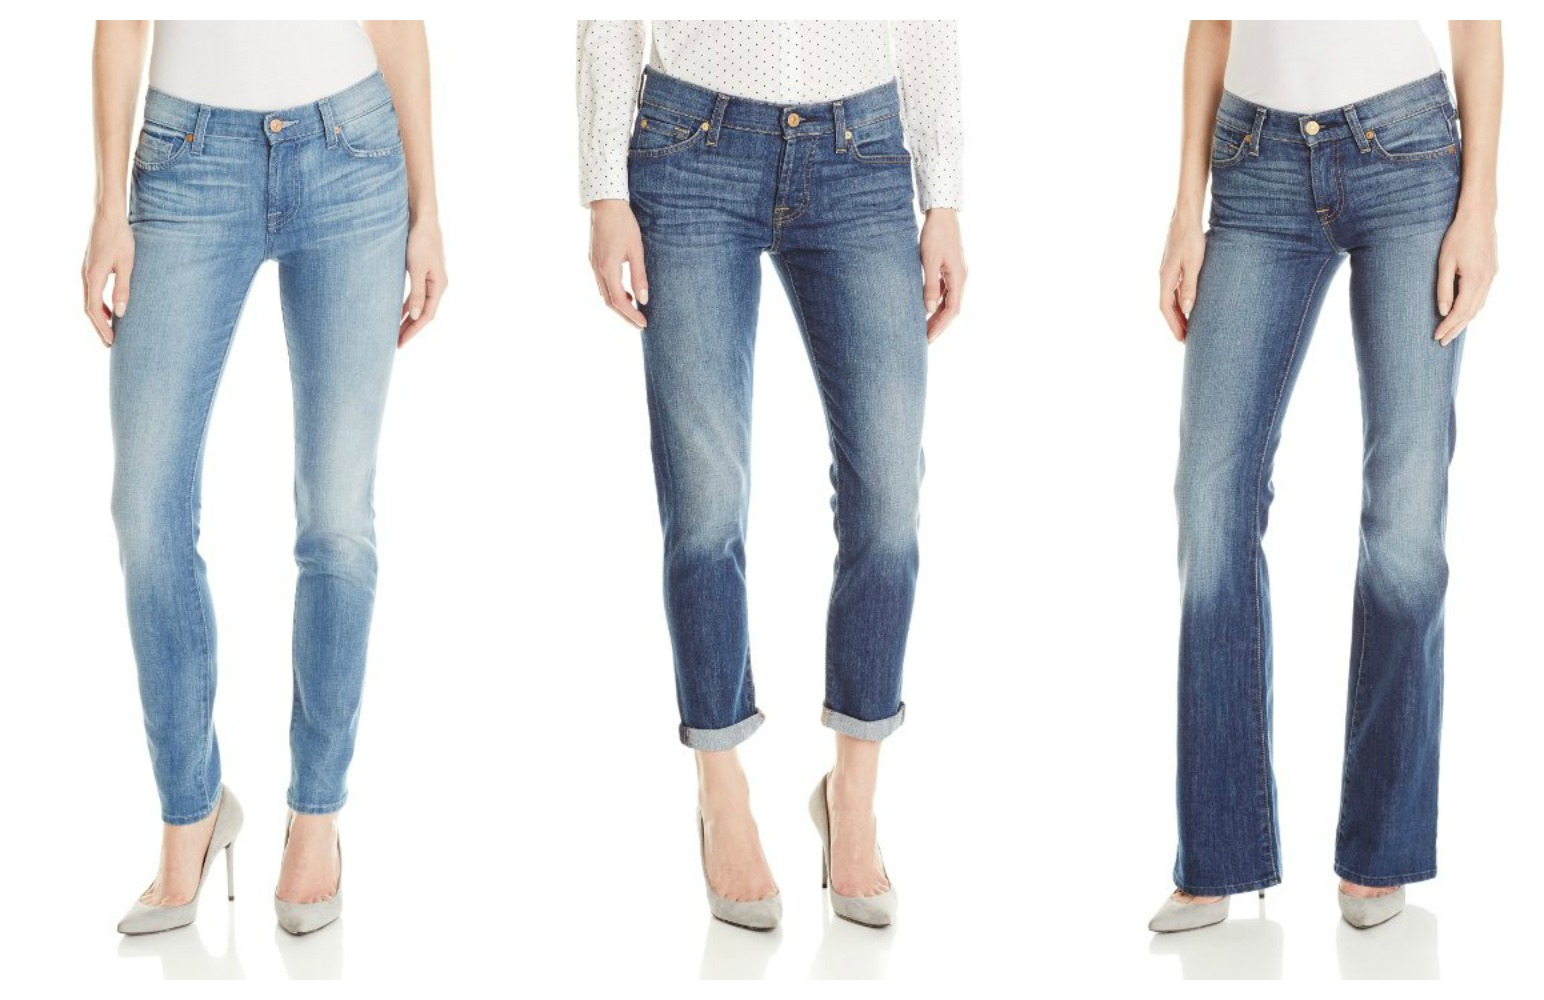 7 For All Mankind is a premium denim retailer, home to the sexiest jean styles and form-fitting clothing. Take home any product from their collection like skinny, boot-cut, straight and boyfriend jeans with zero shipping or return costs.